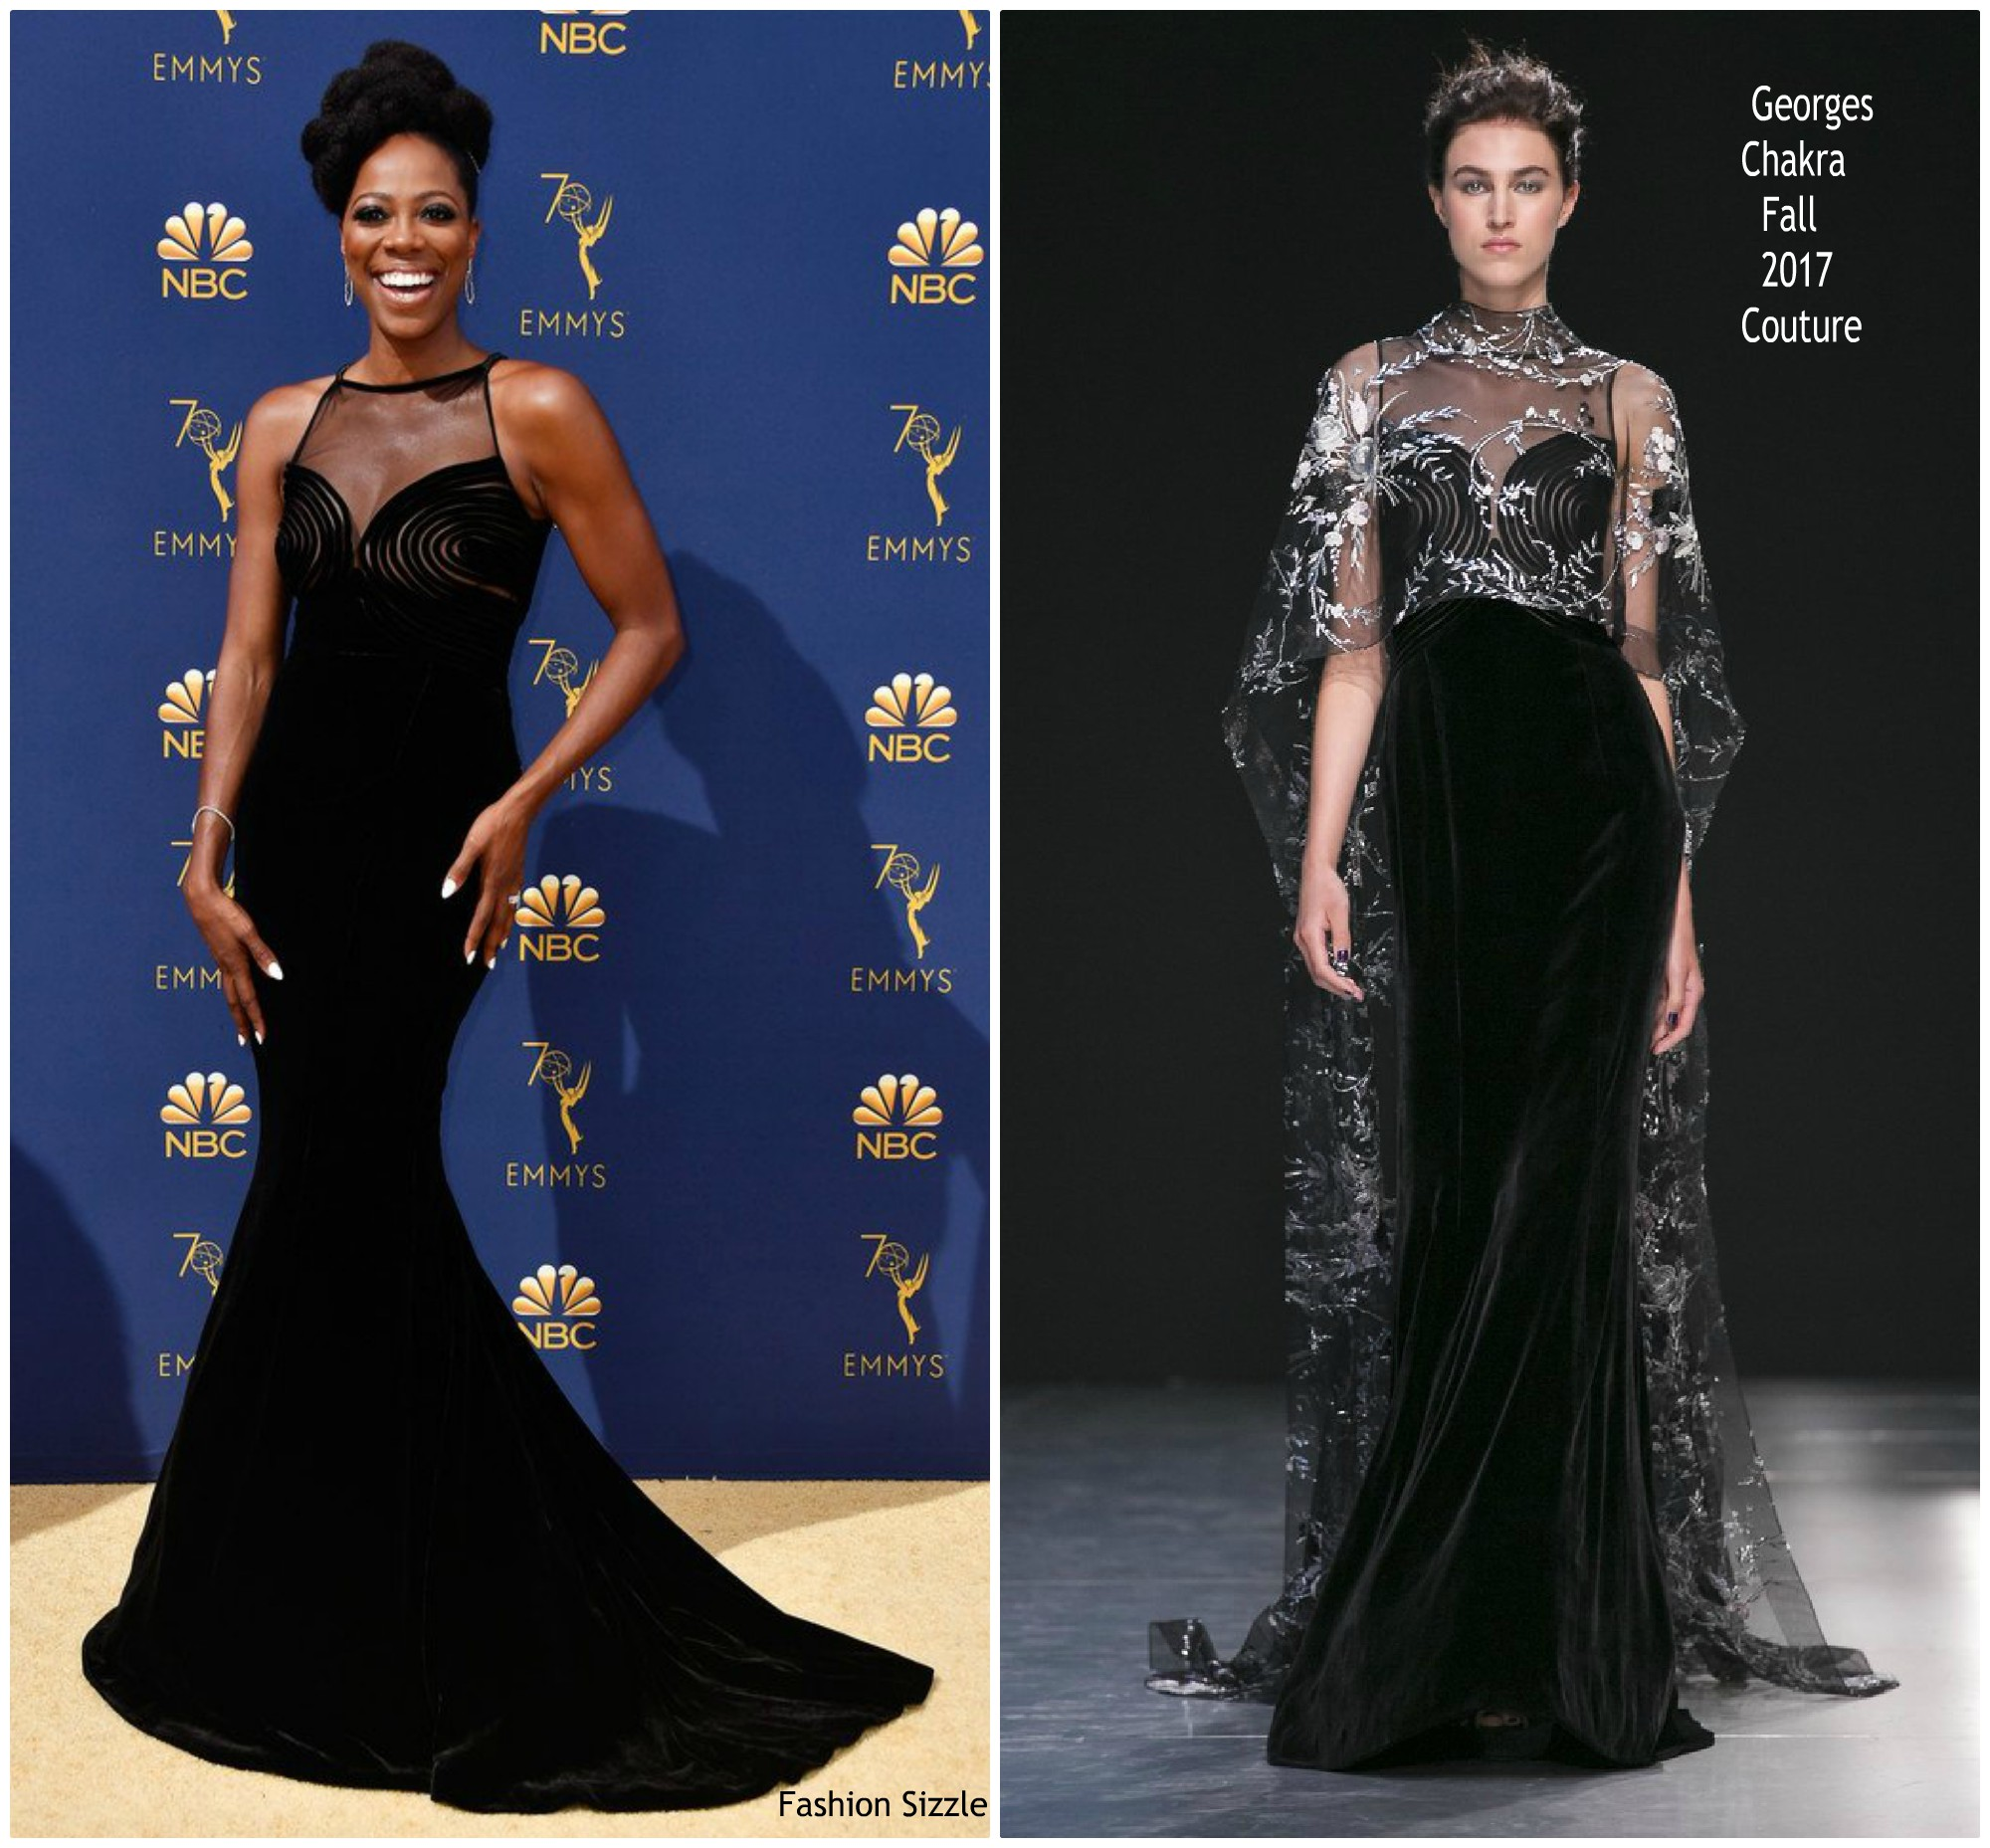 yvonne-orji-in-georges-chakra-2018-emmy-awards